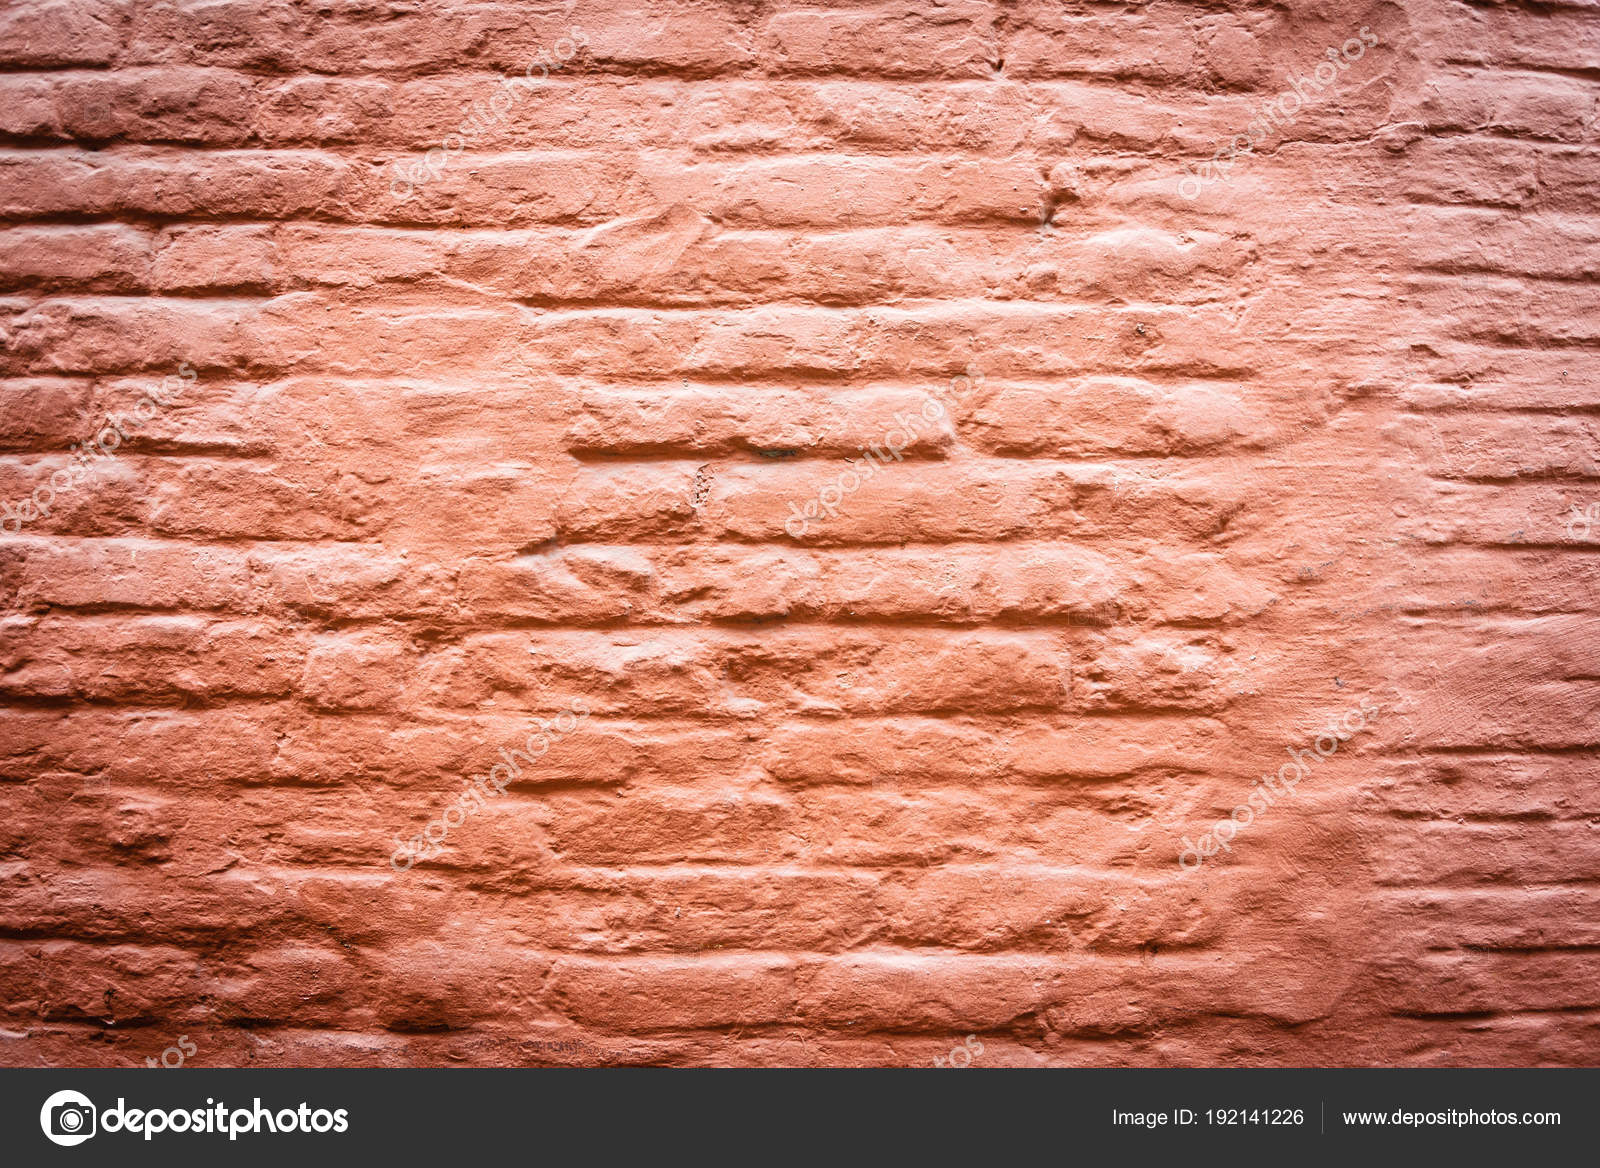 old red brick wall textures backgrounds stock photo ilolab